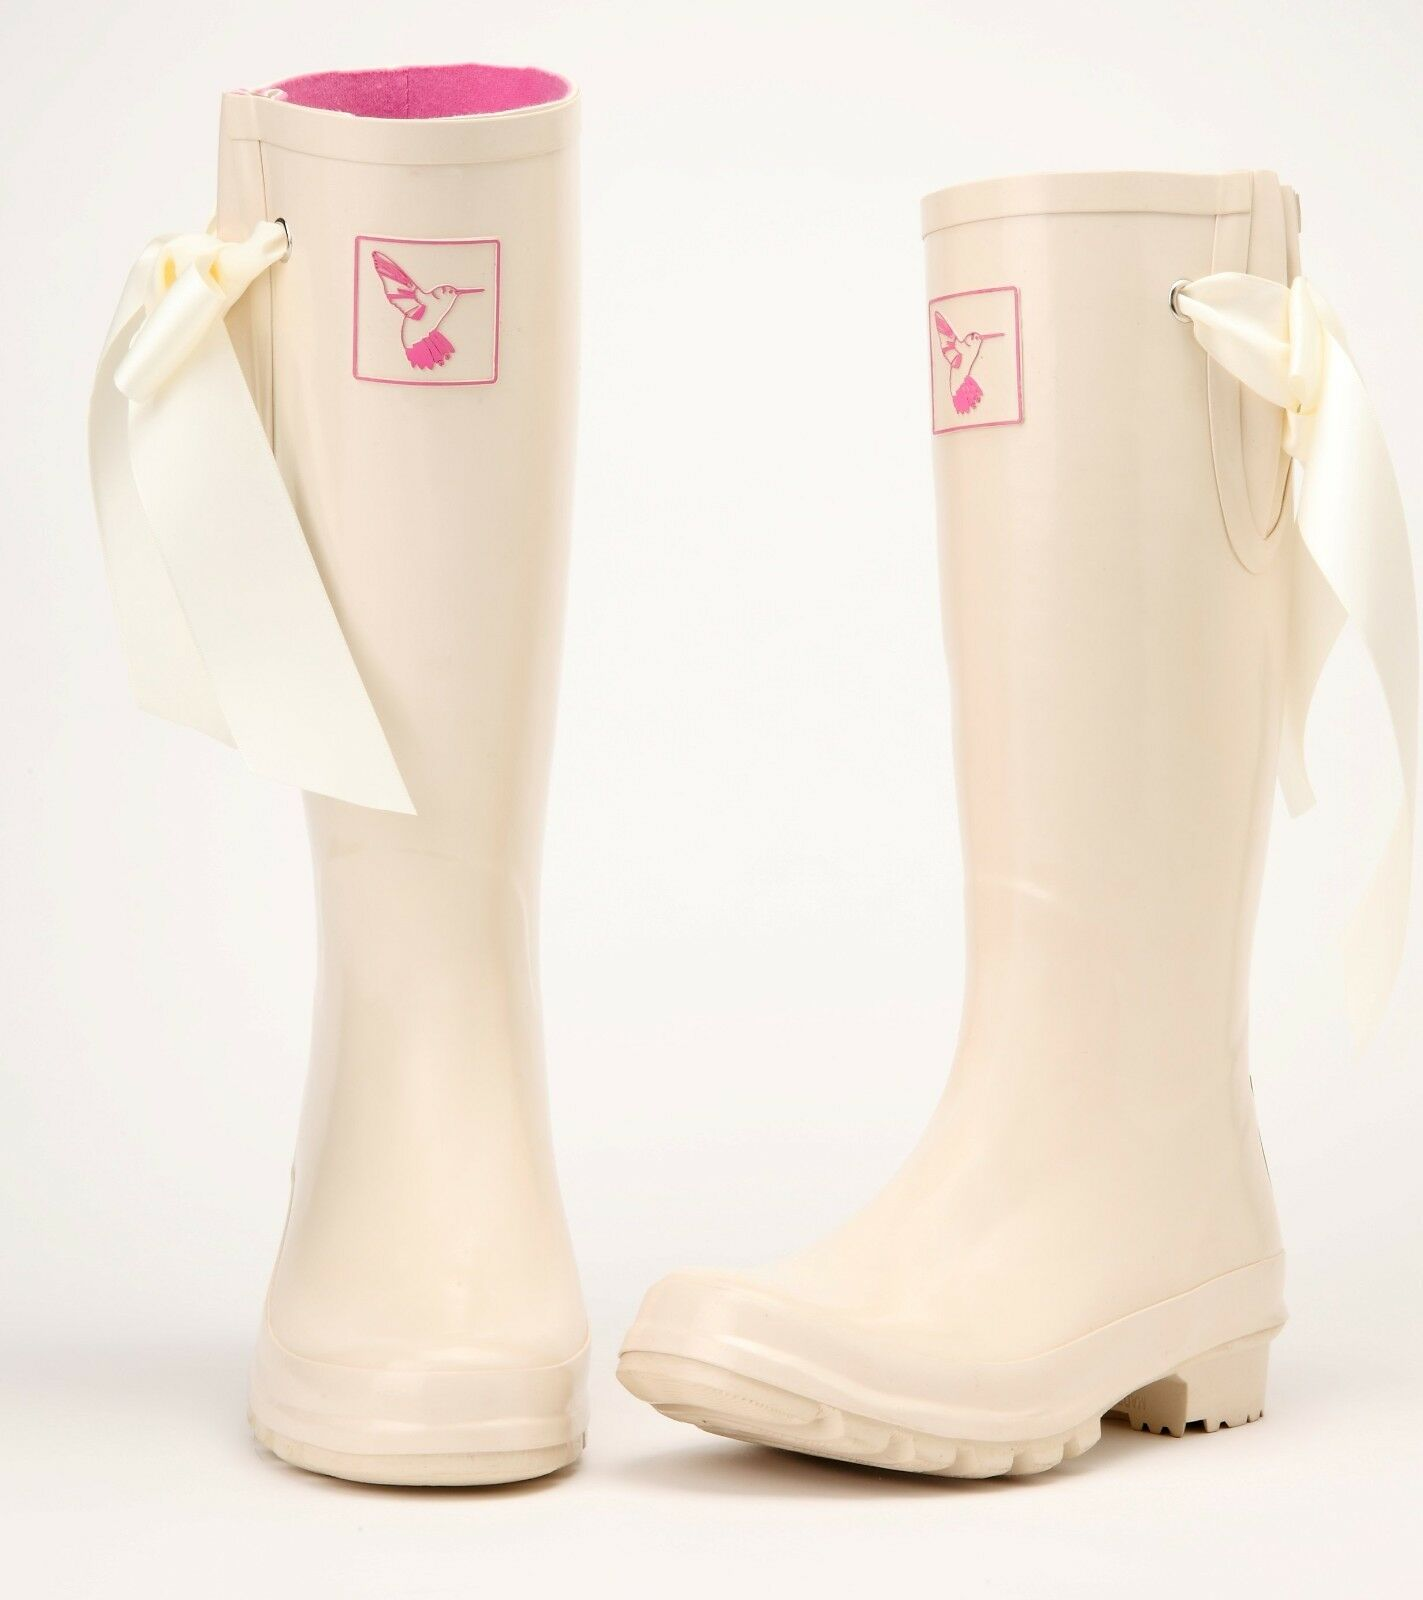 Wedding Wellingtons DONNA SPOSA IN GOMMA evercreatures WEDDINGTON WEDDINGTON evercreatures Stivali 65d41a